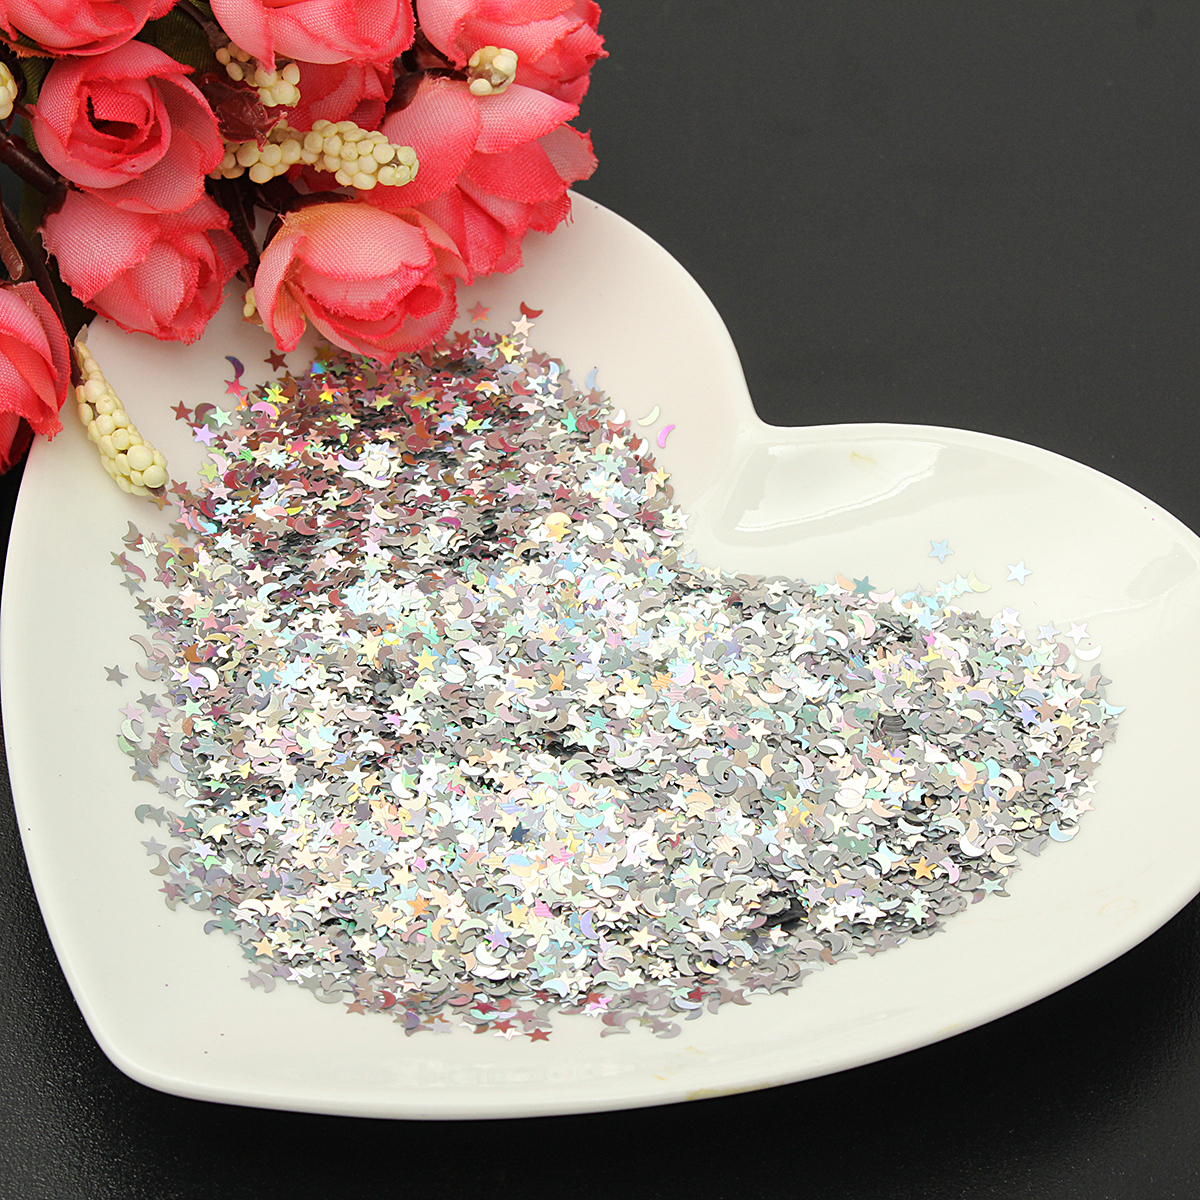 100g Silver Glitter for Emulsion Paint Shiny Stars Moons Rainbow Decorations